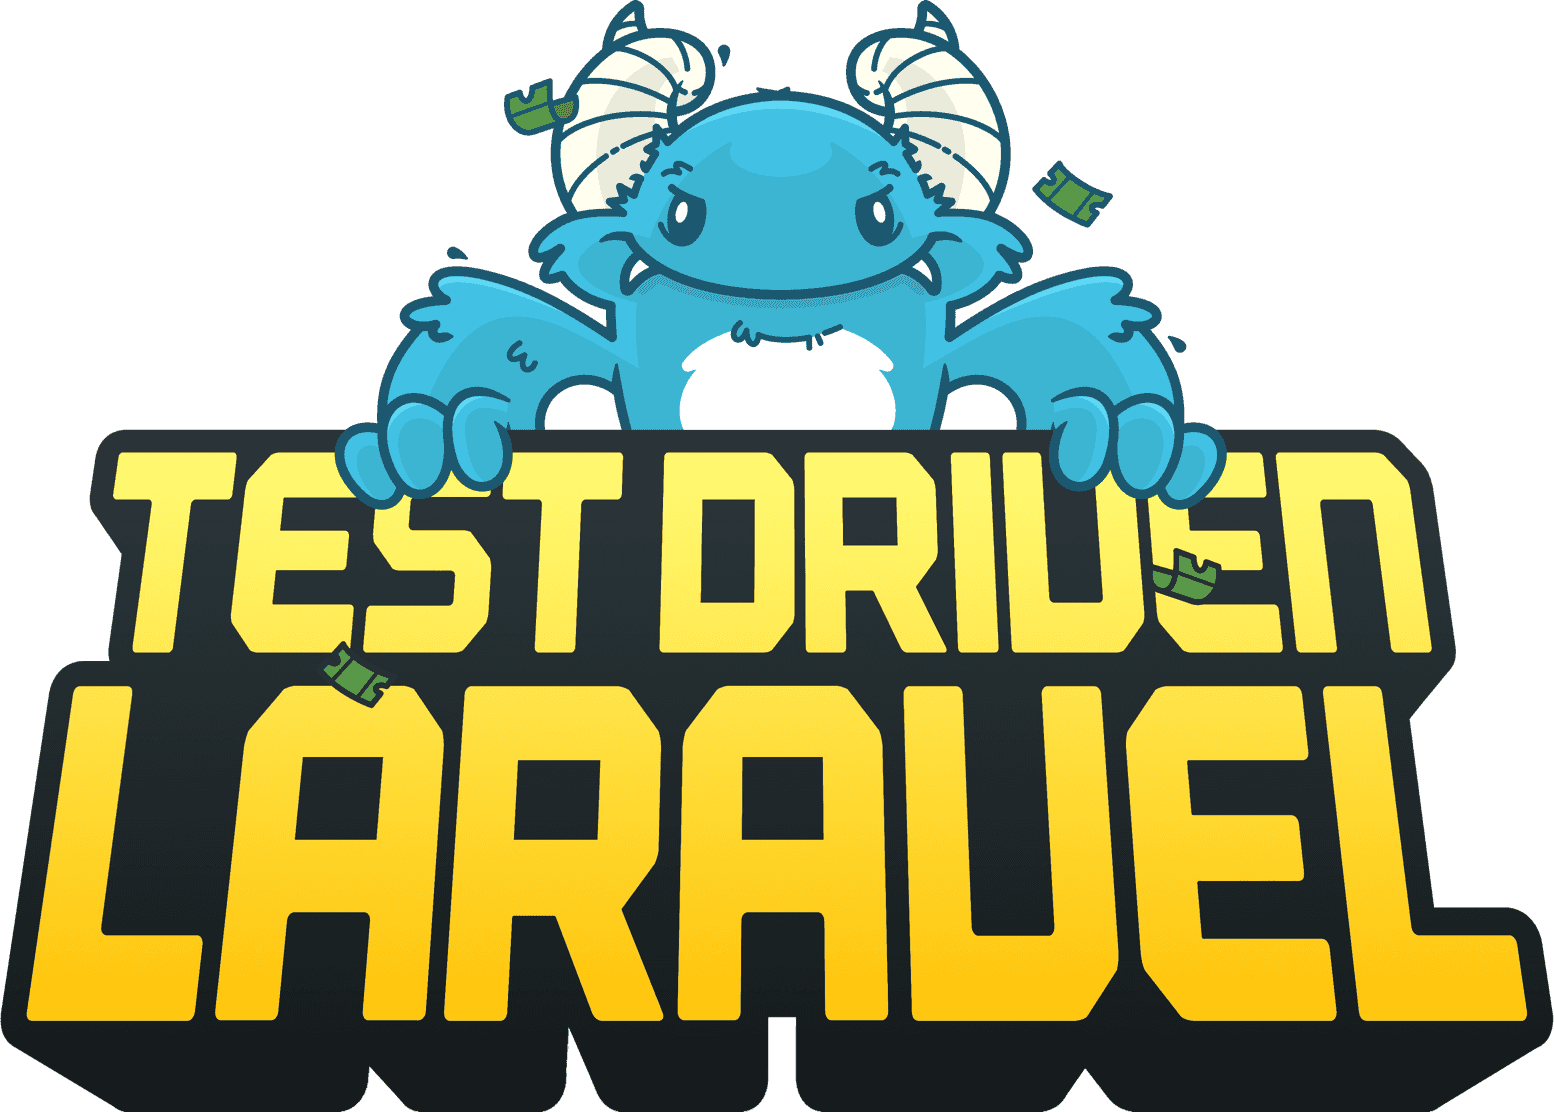 Test clipart easy test. Driven laravel learn to